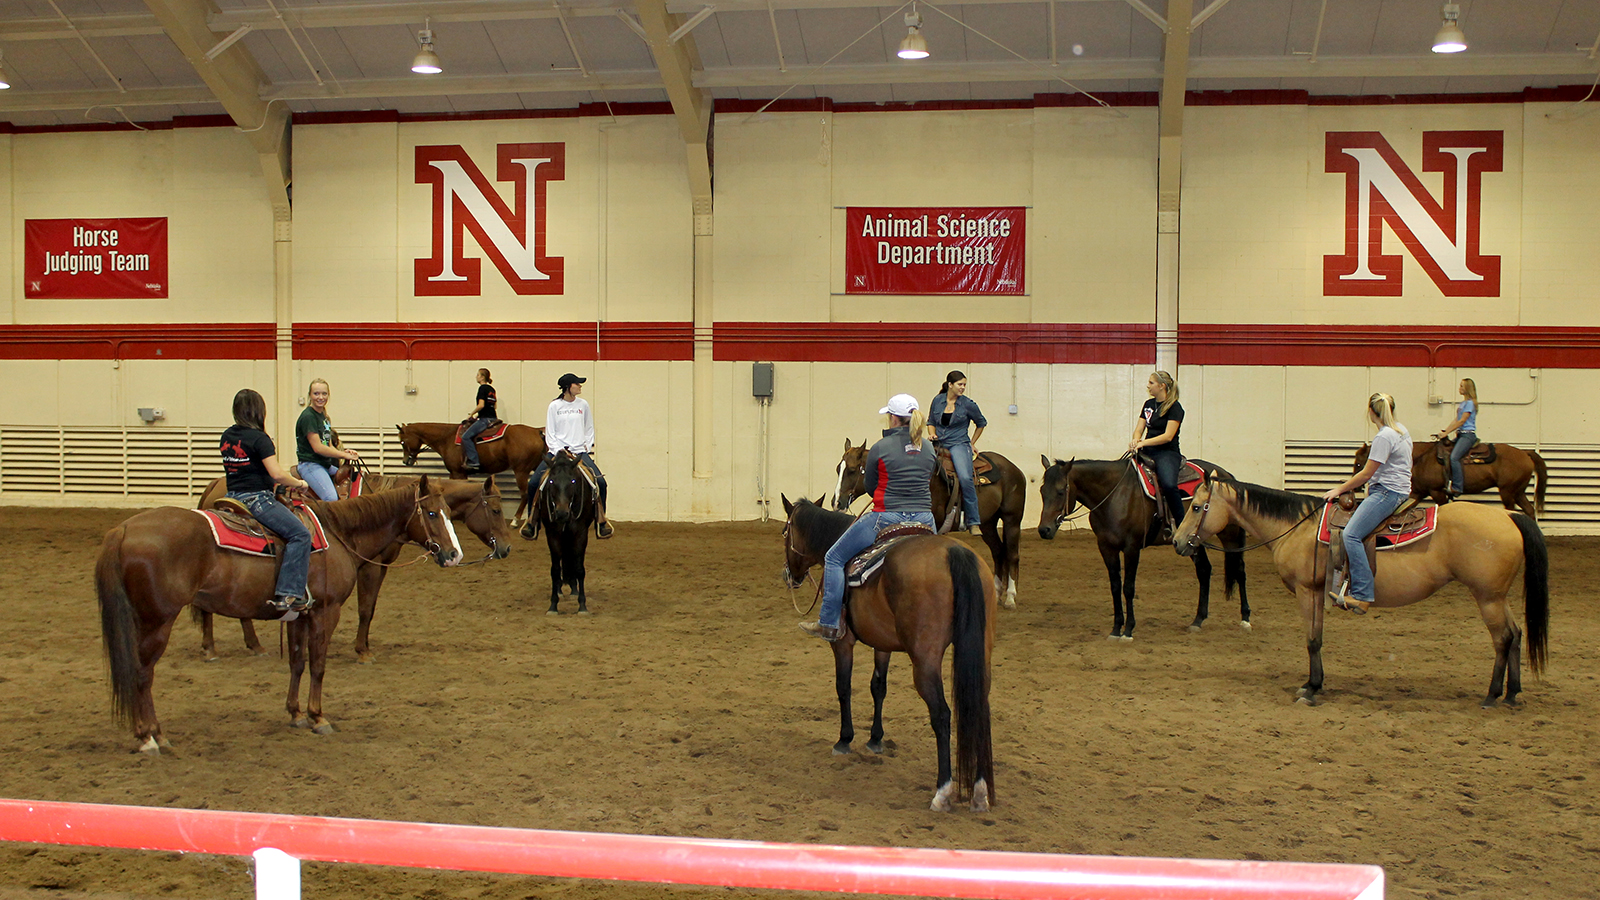 Students on horses in the arena